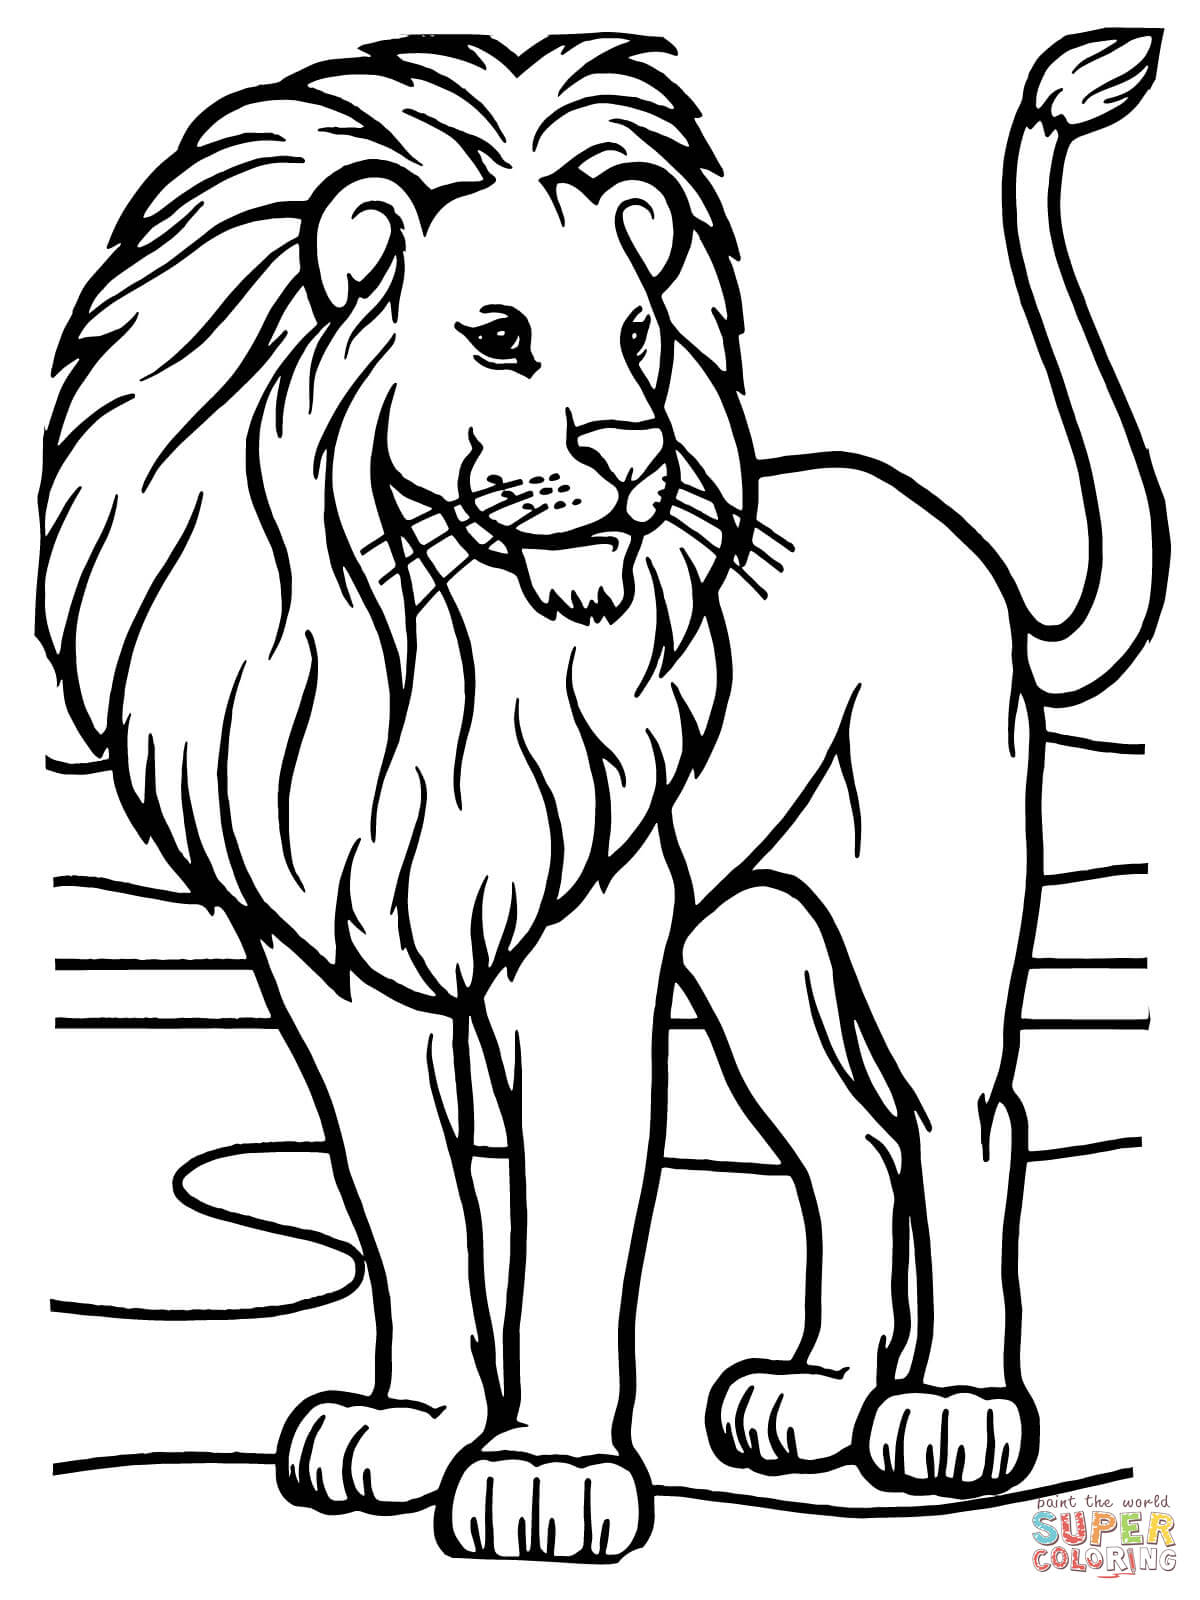 Male African Lion Coloring Page | Free Printable Coloring Pages - Free Printable Picture Of A Lion